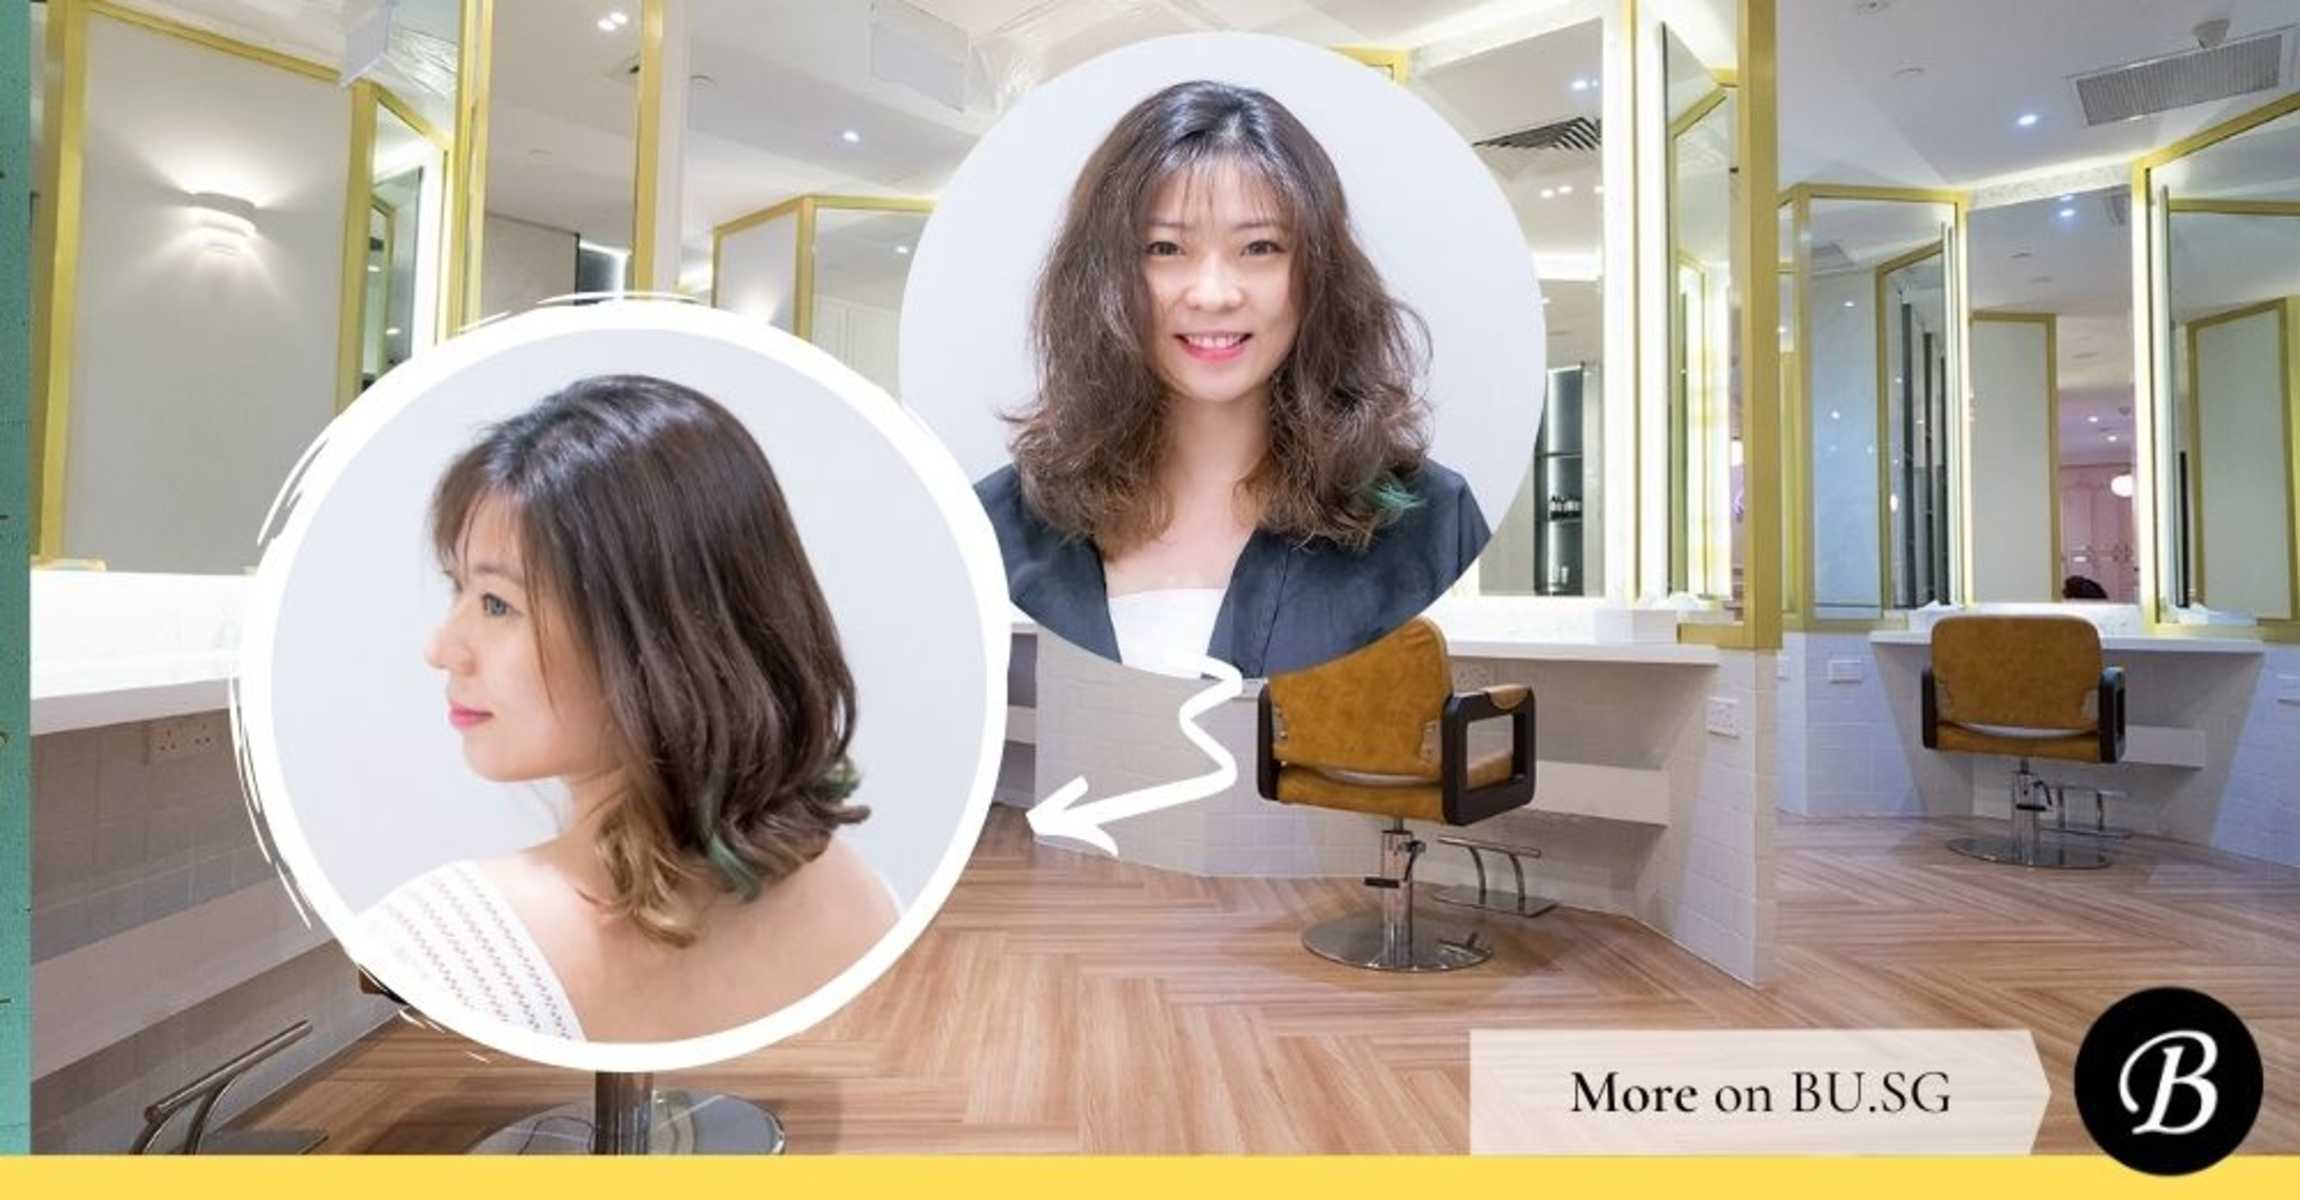 Advante Perm is One of 3 Ways to Fix Bad Perms